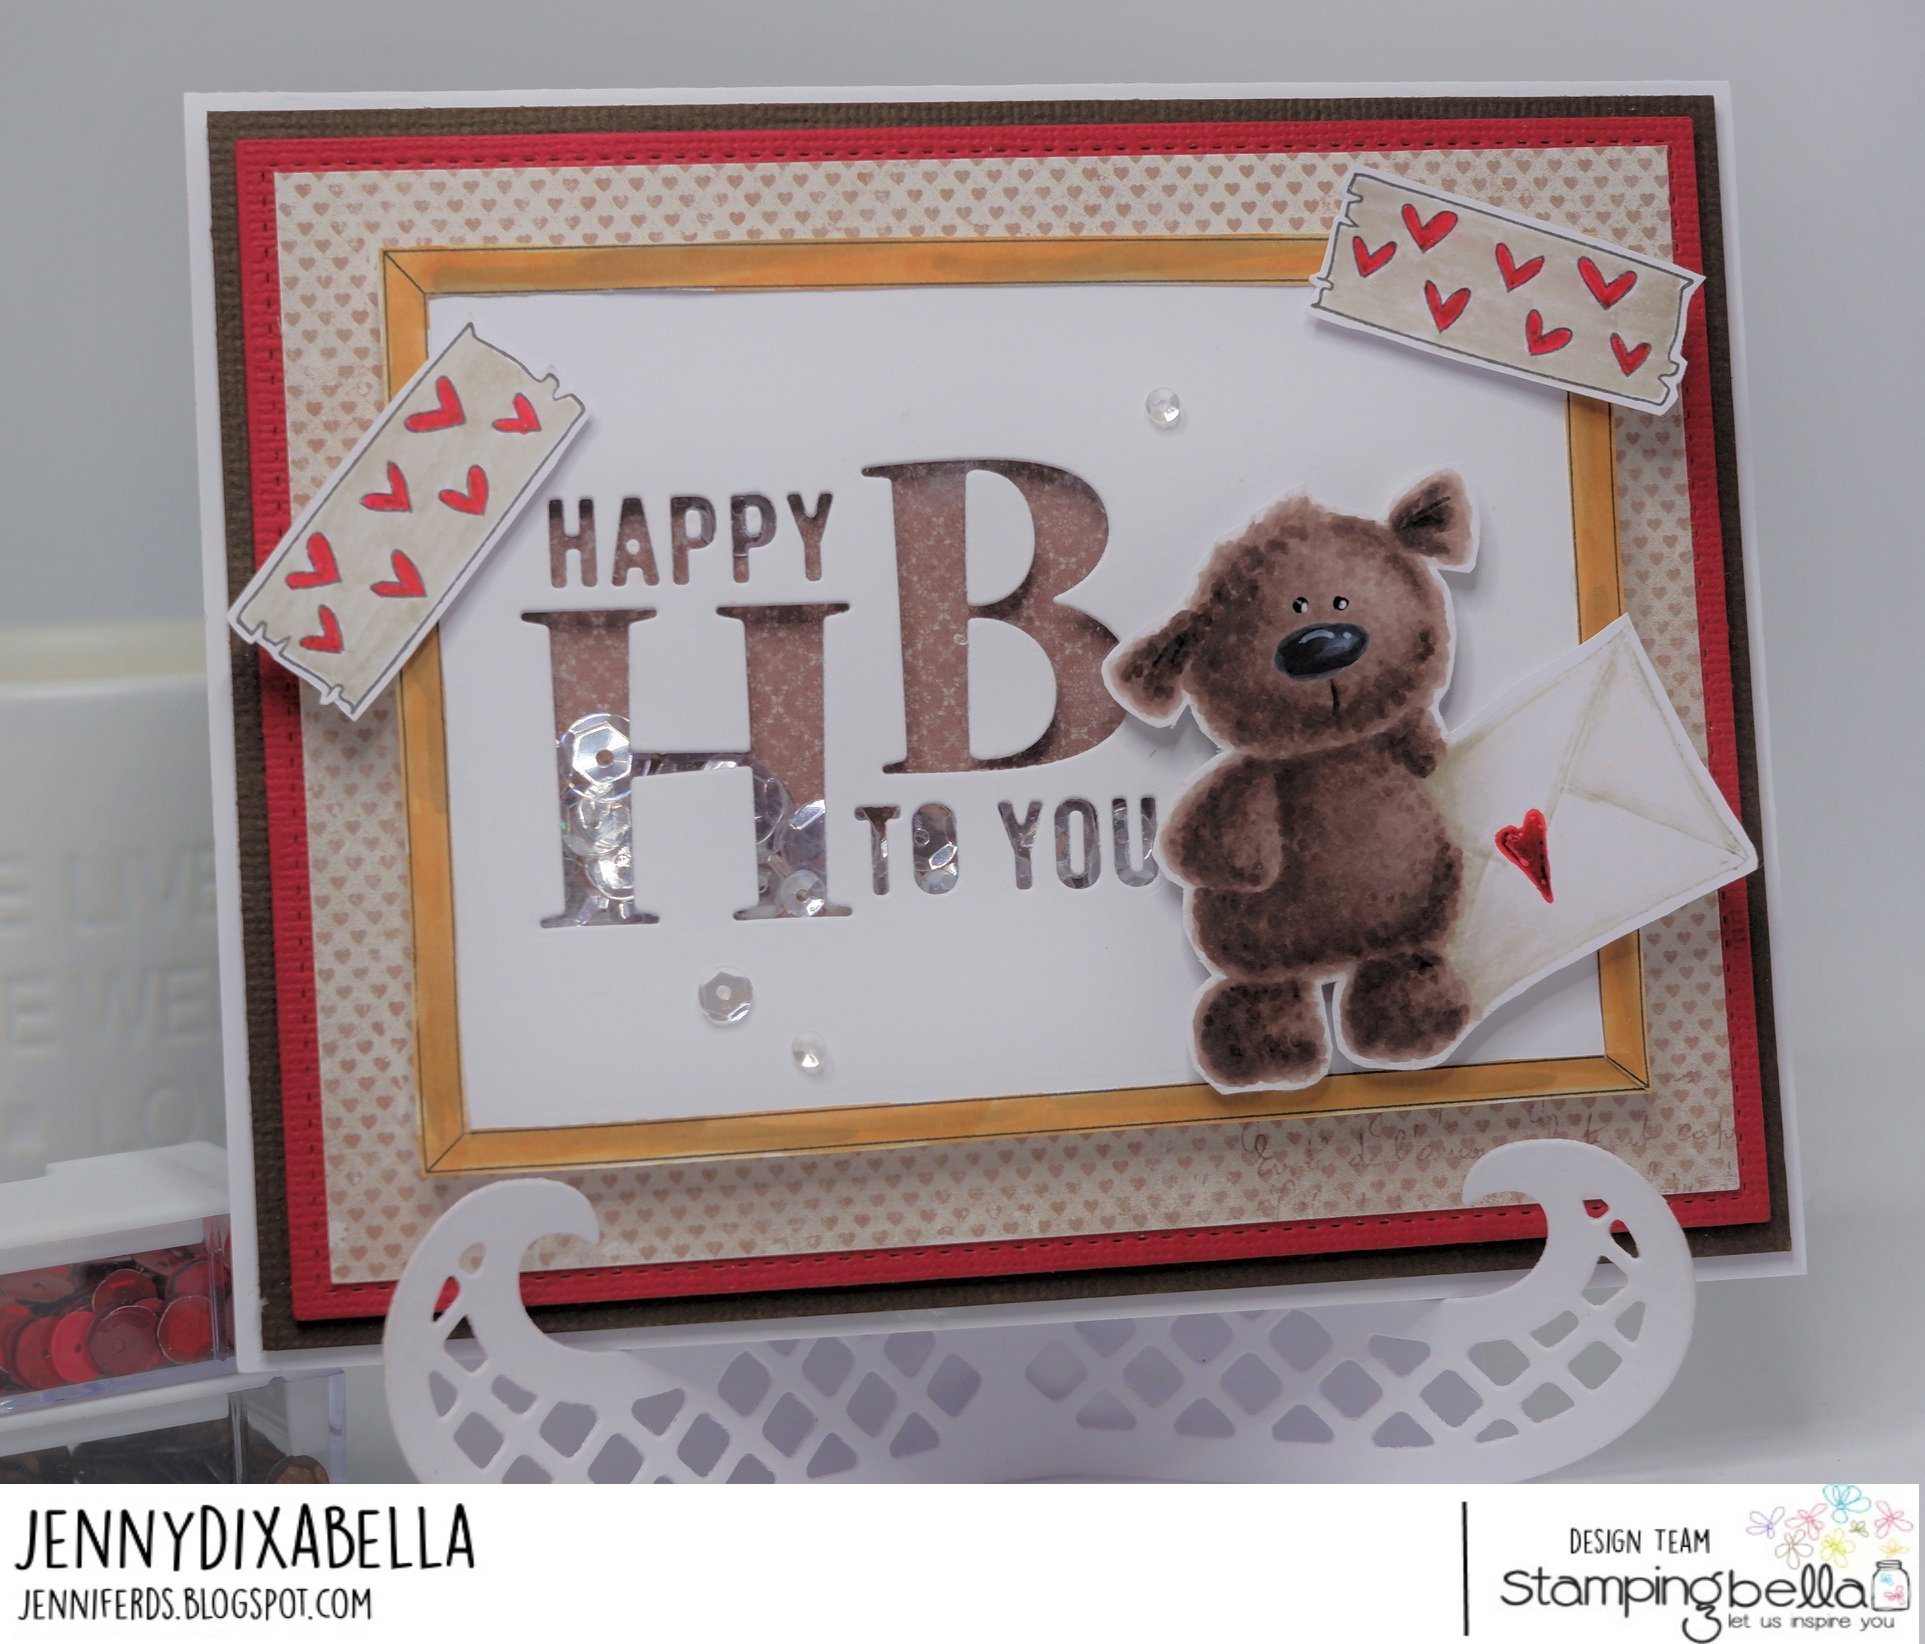 www.stampingbella.com: rubber stamps used:  l  washi tape set, corkboard backdrop and Harry the Stuffie.  Card by Jenny Dix